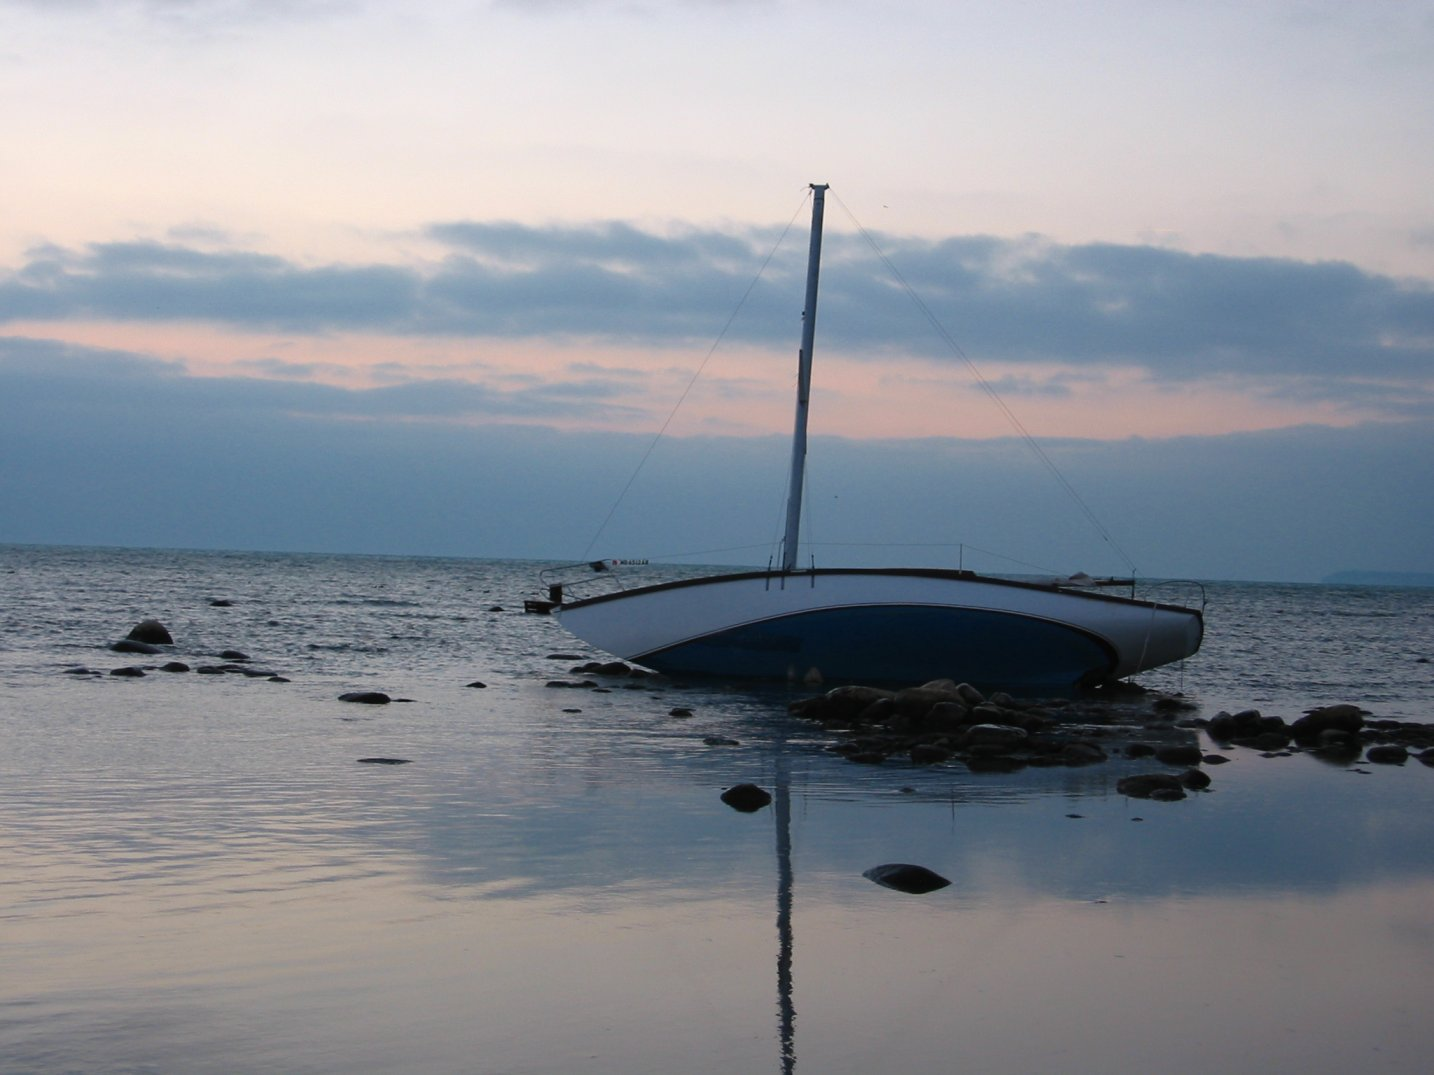 Stranded sailboat above Bradford Beach, in Lake Michigan, Milwaukee, WI - 11-25-2007 - soul-amp.com